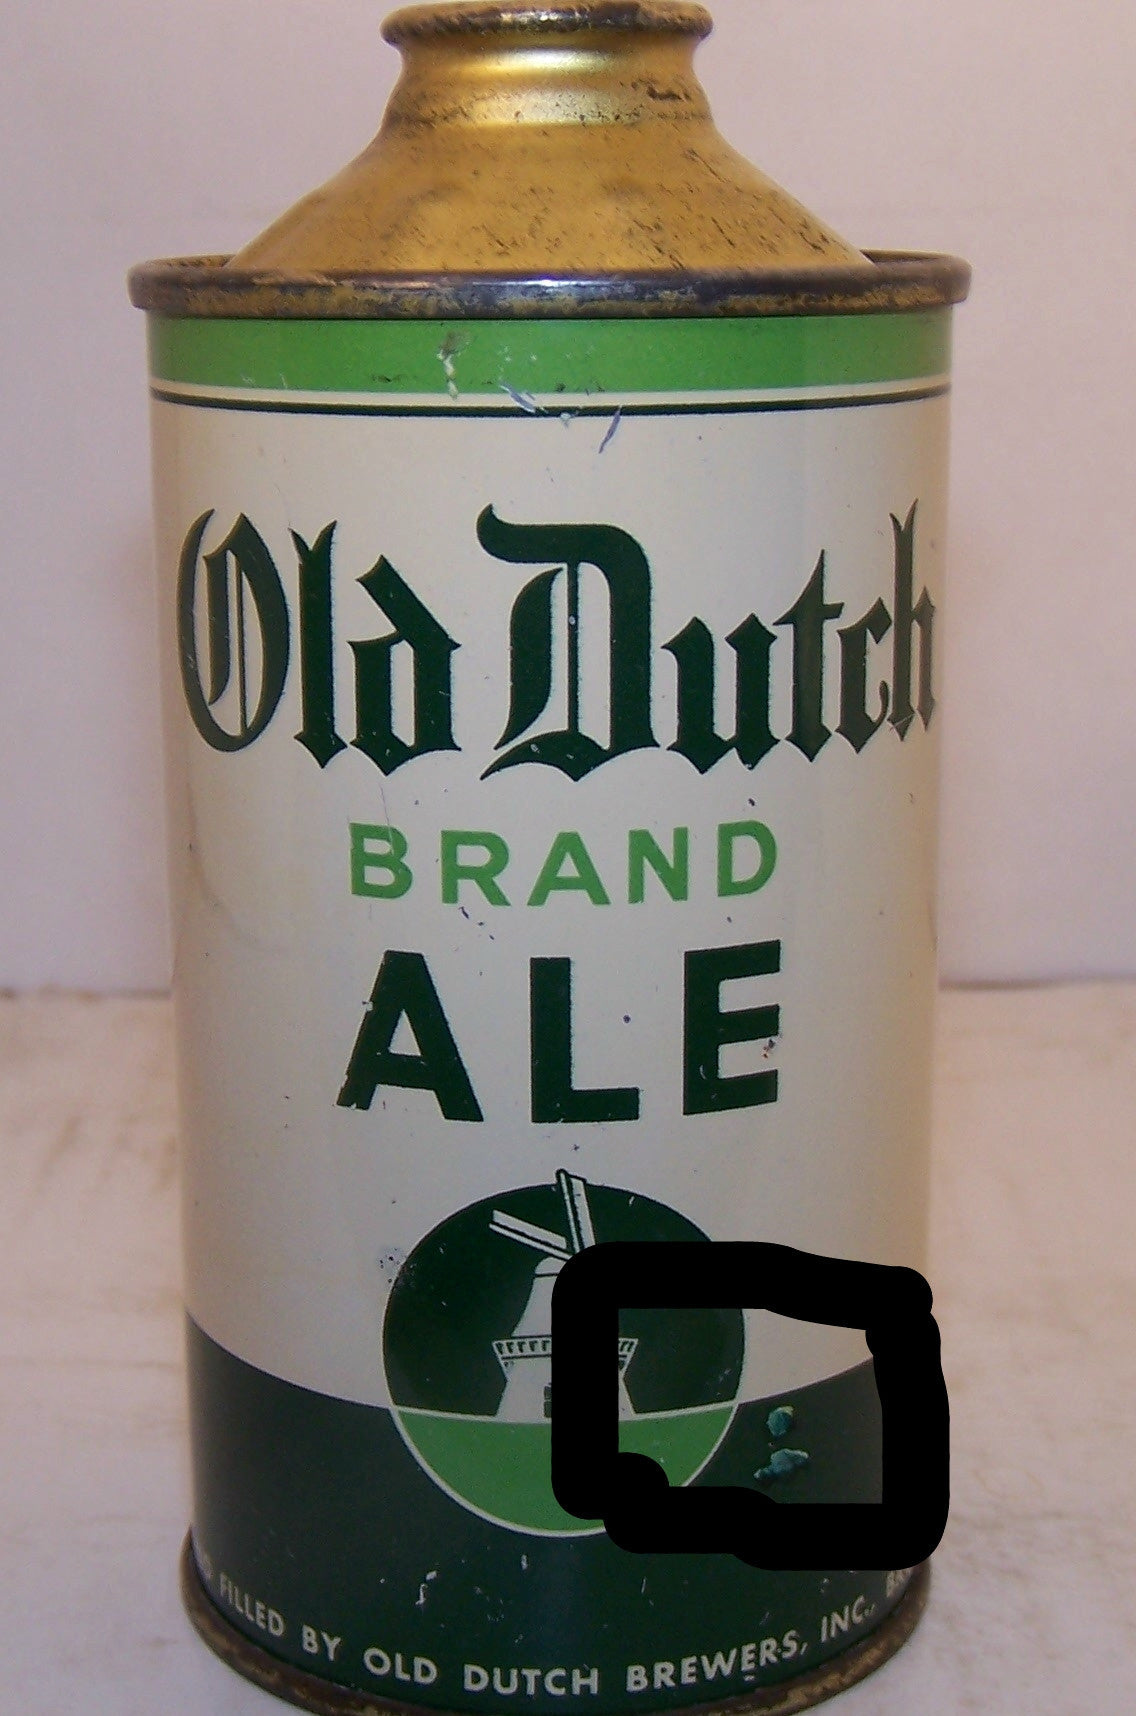 Old Dutch Brand Ale, USBC 176-2 Grade 1/1- Sold 1/8/15